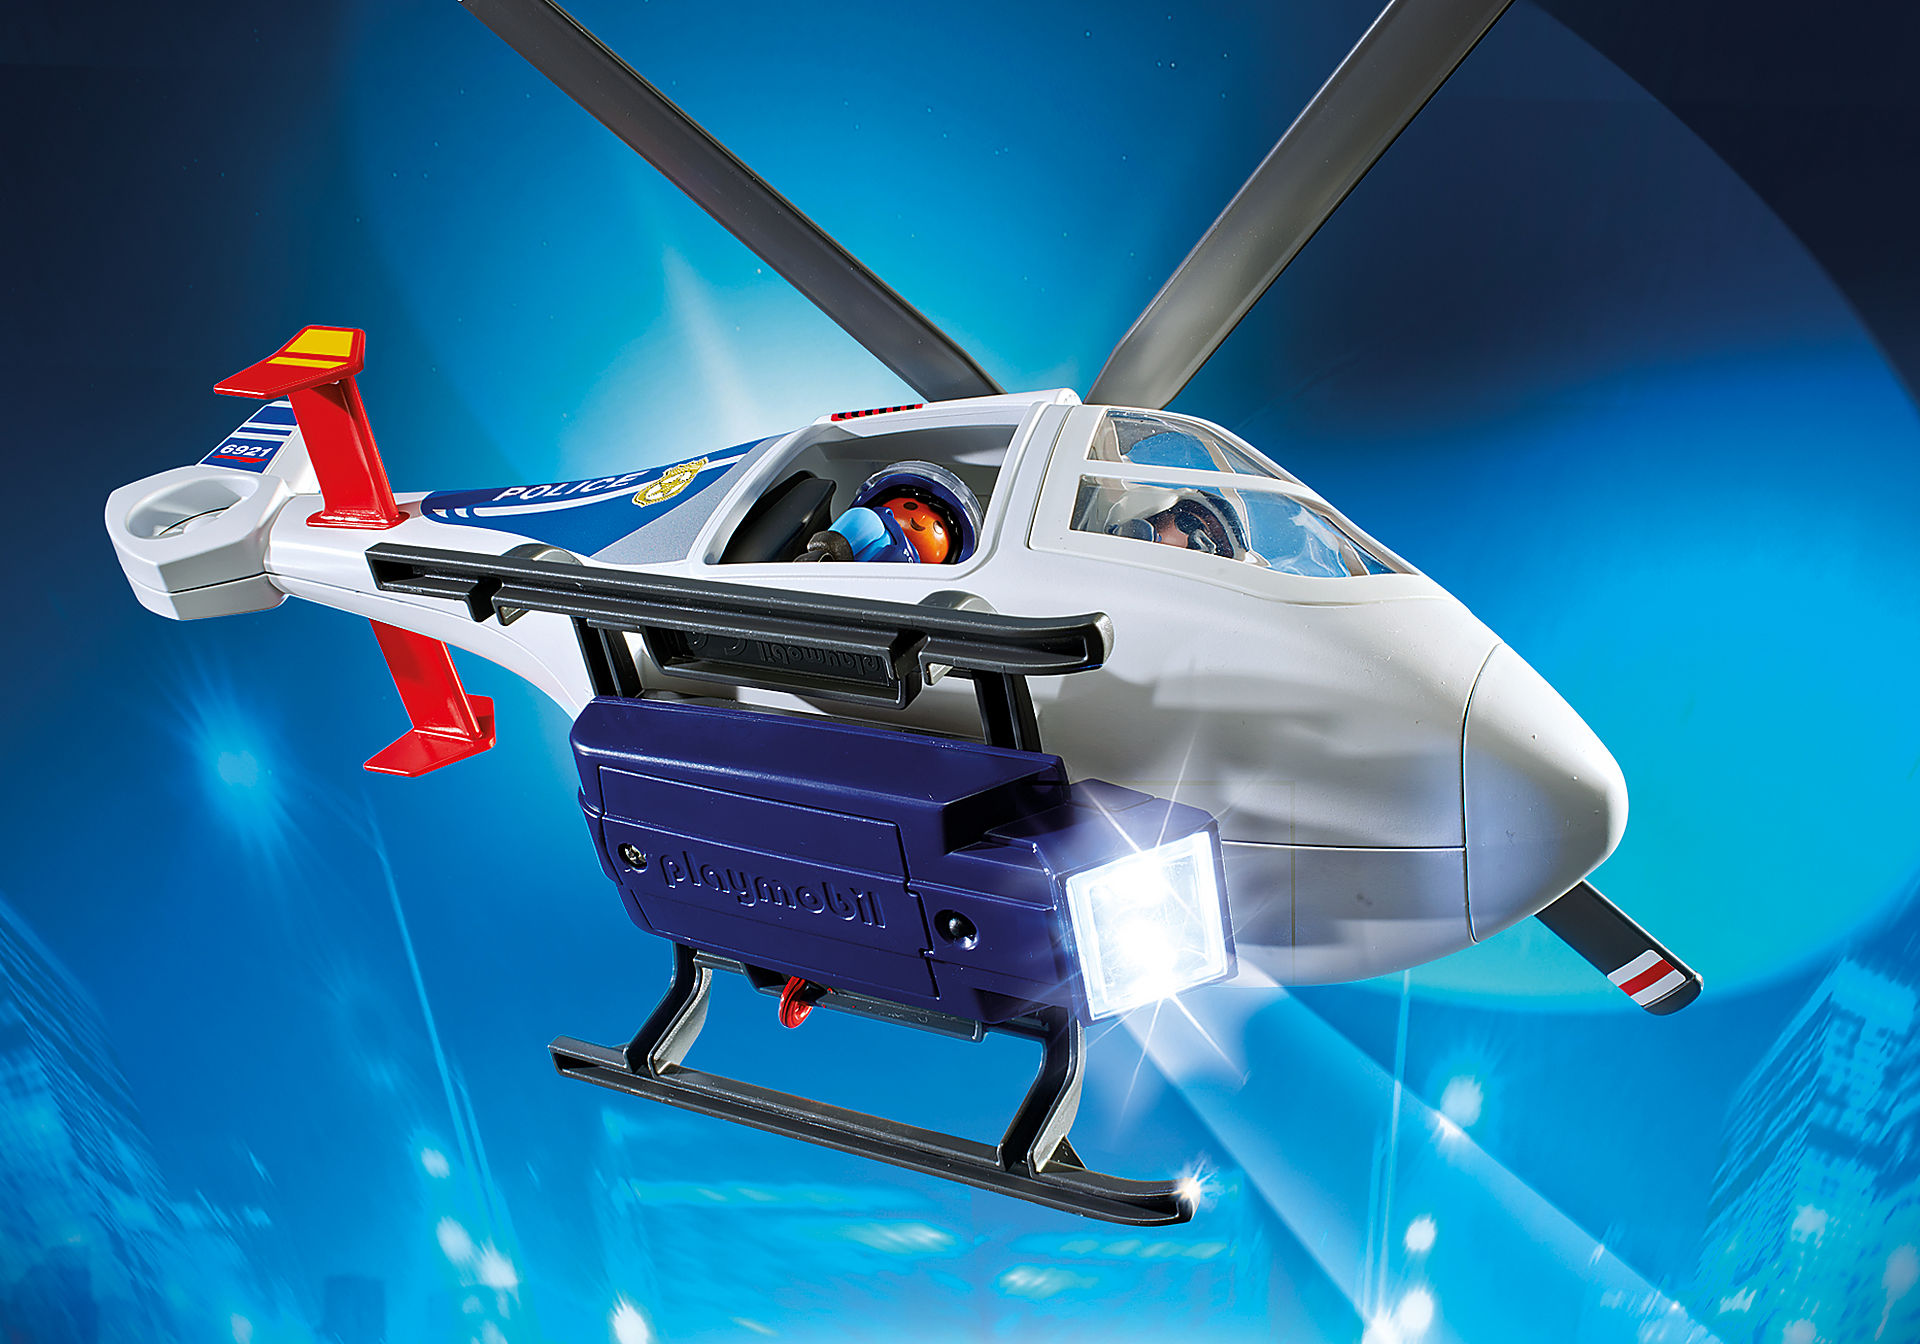 http://media.playmobil.com/i/playmobil/6921_product_extra3/Politiehelikopter met LED-zoeklicht